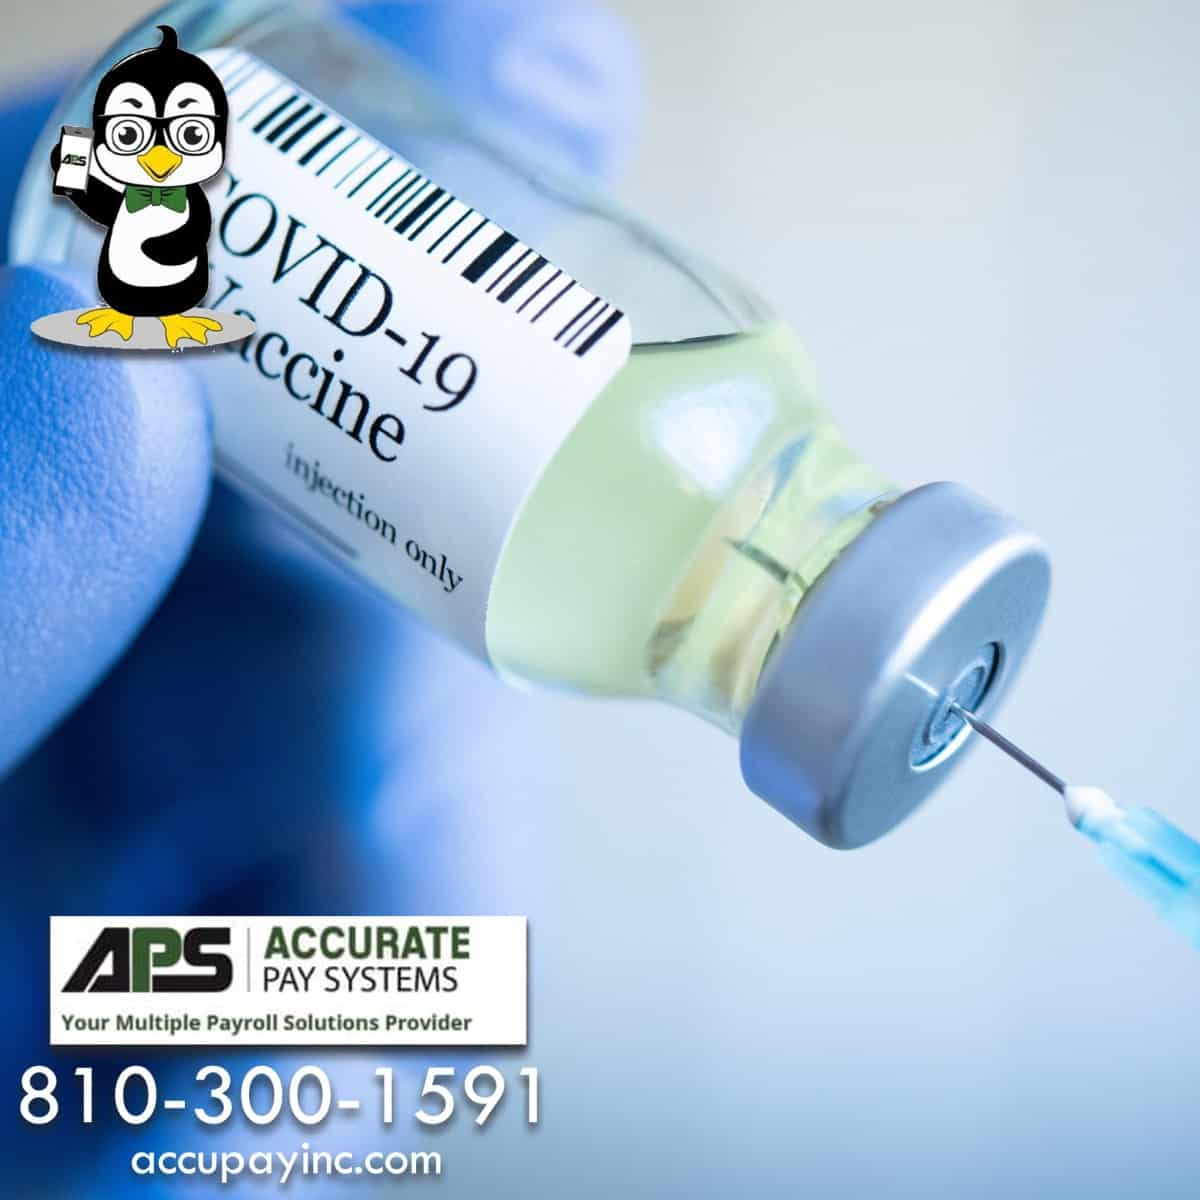 COVID-19 vaccination questions about employees